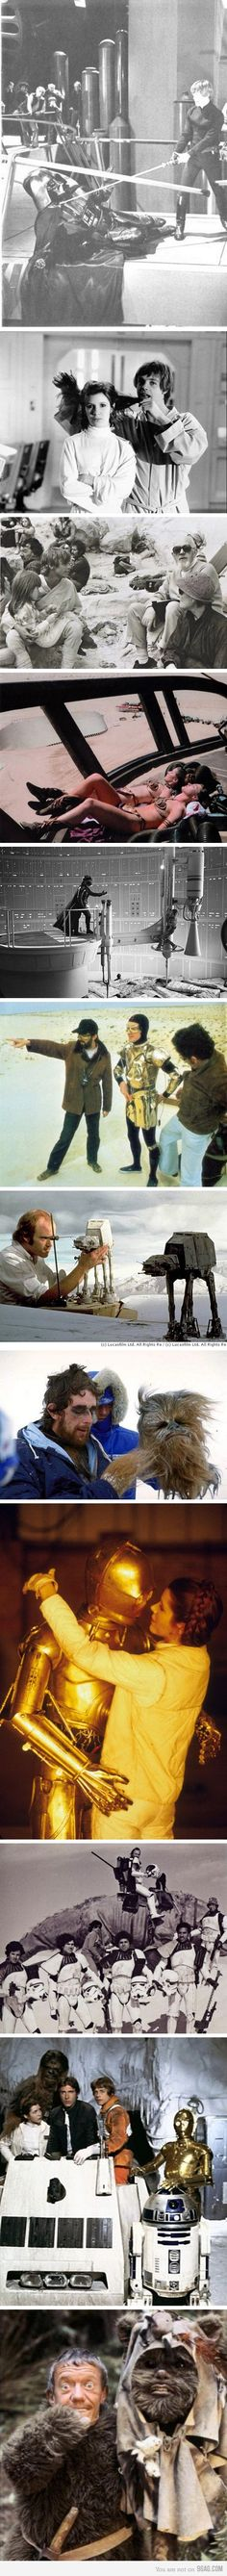 Star Wars, behind the scenes.